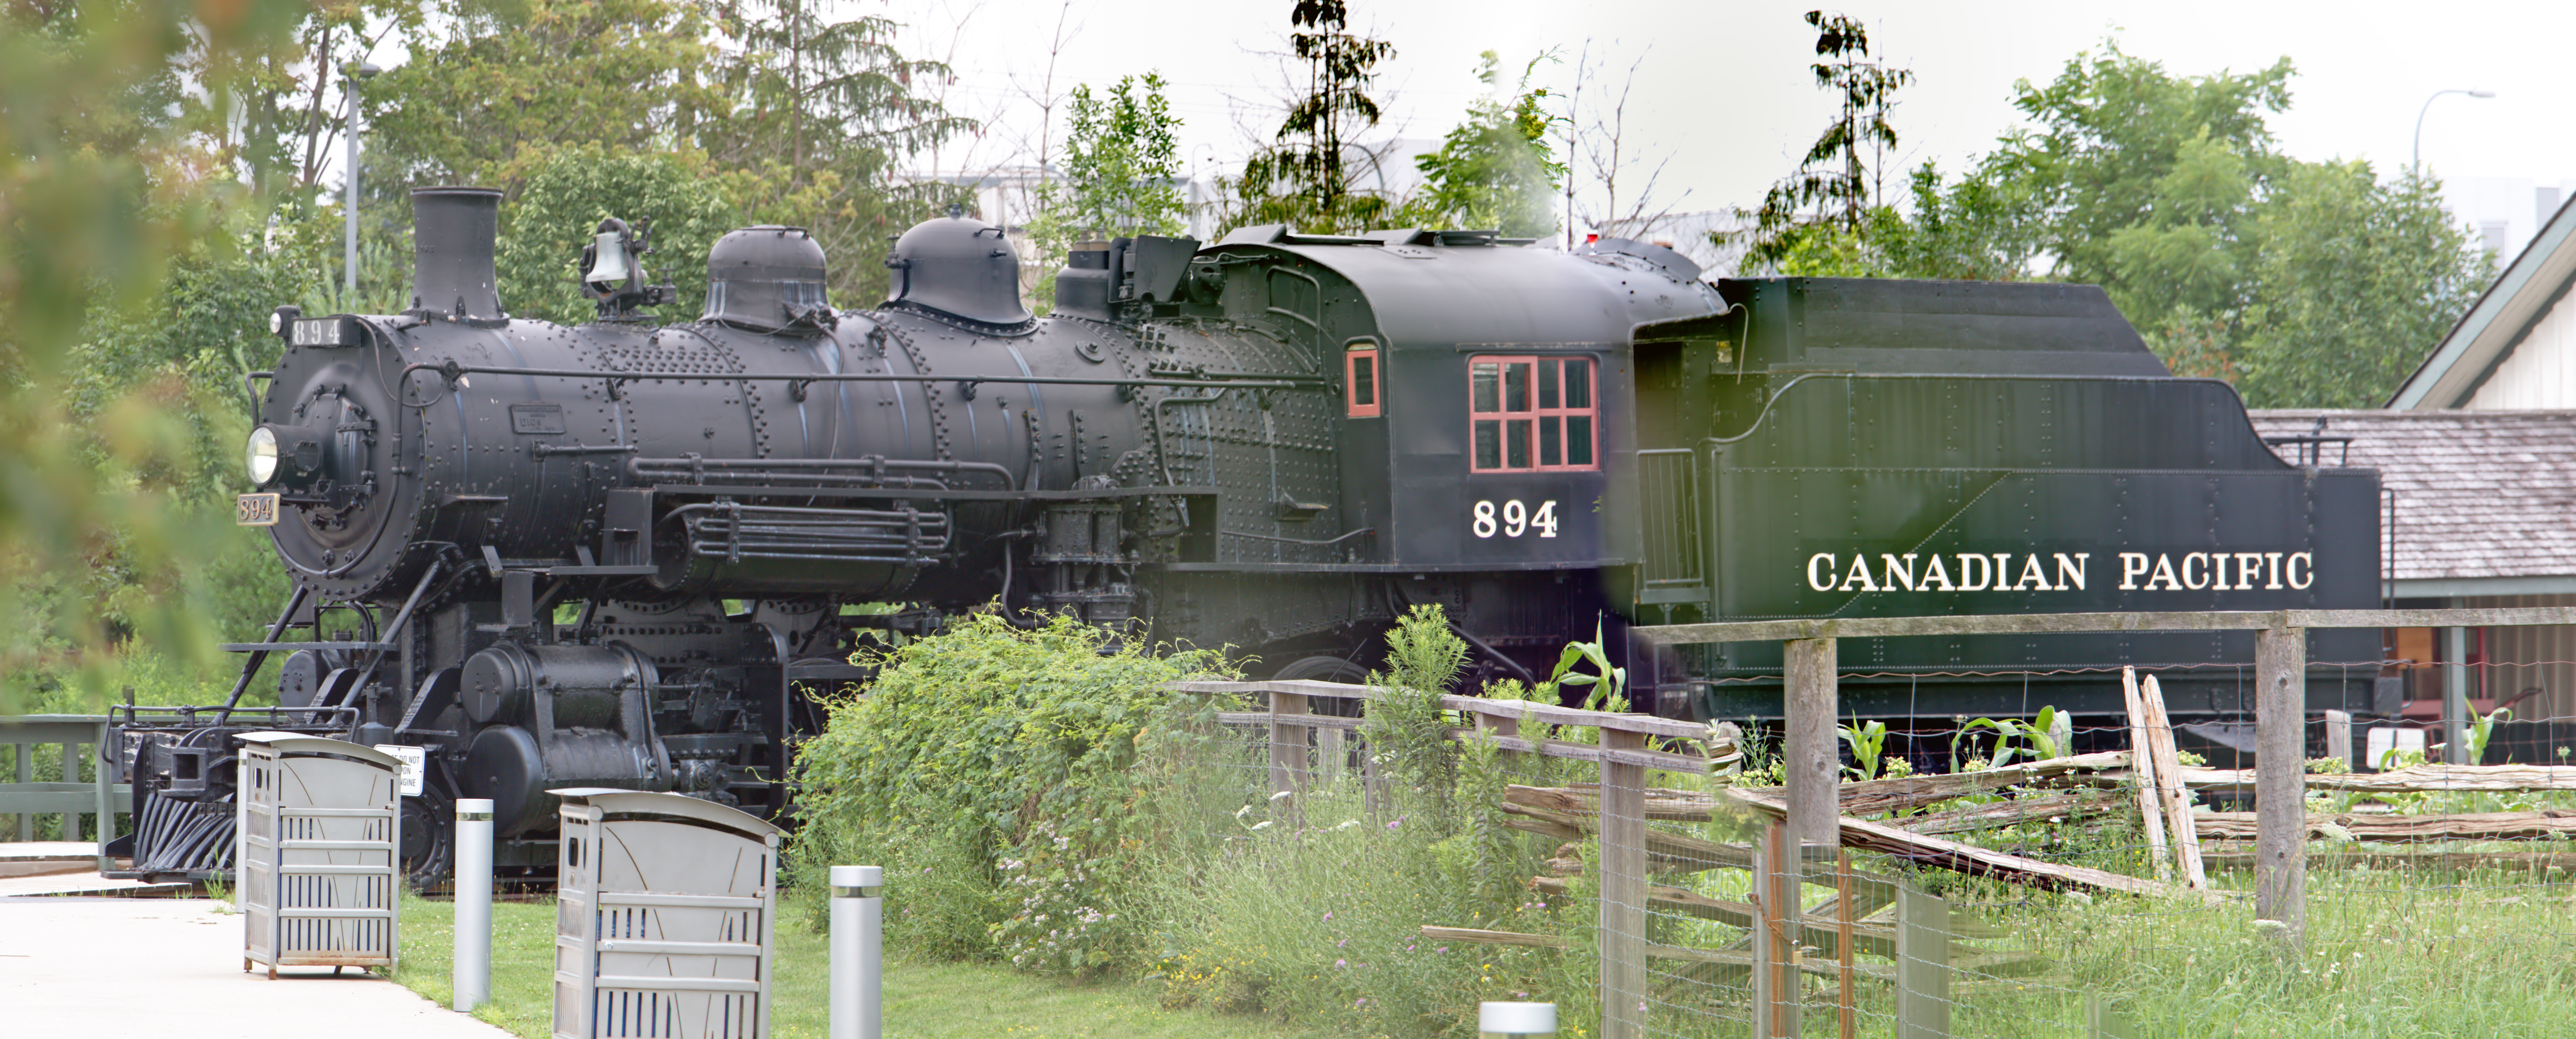 Canadian Pacific Railway (CP) #894. Steam Locomotive 4-6-0, 23 Jul 2017